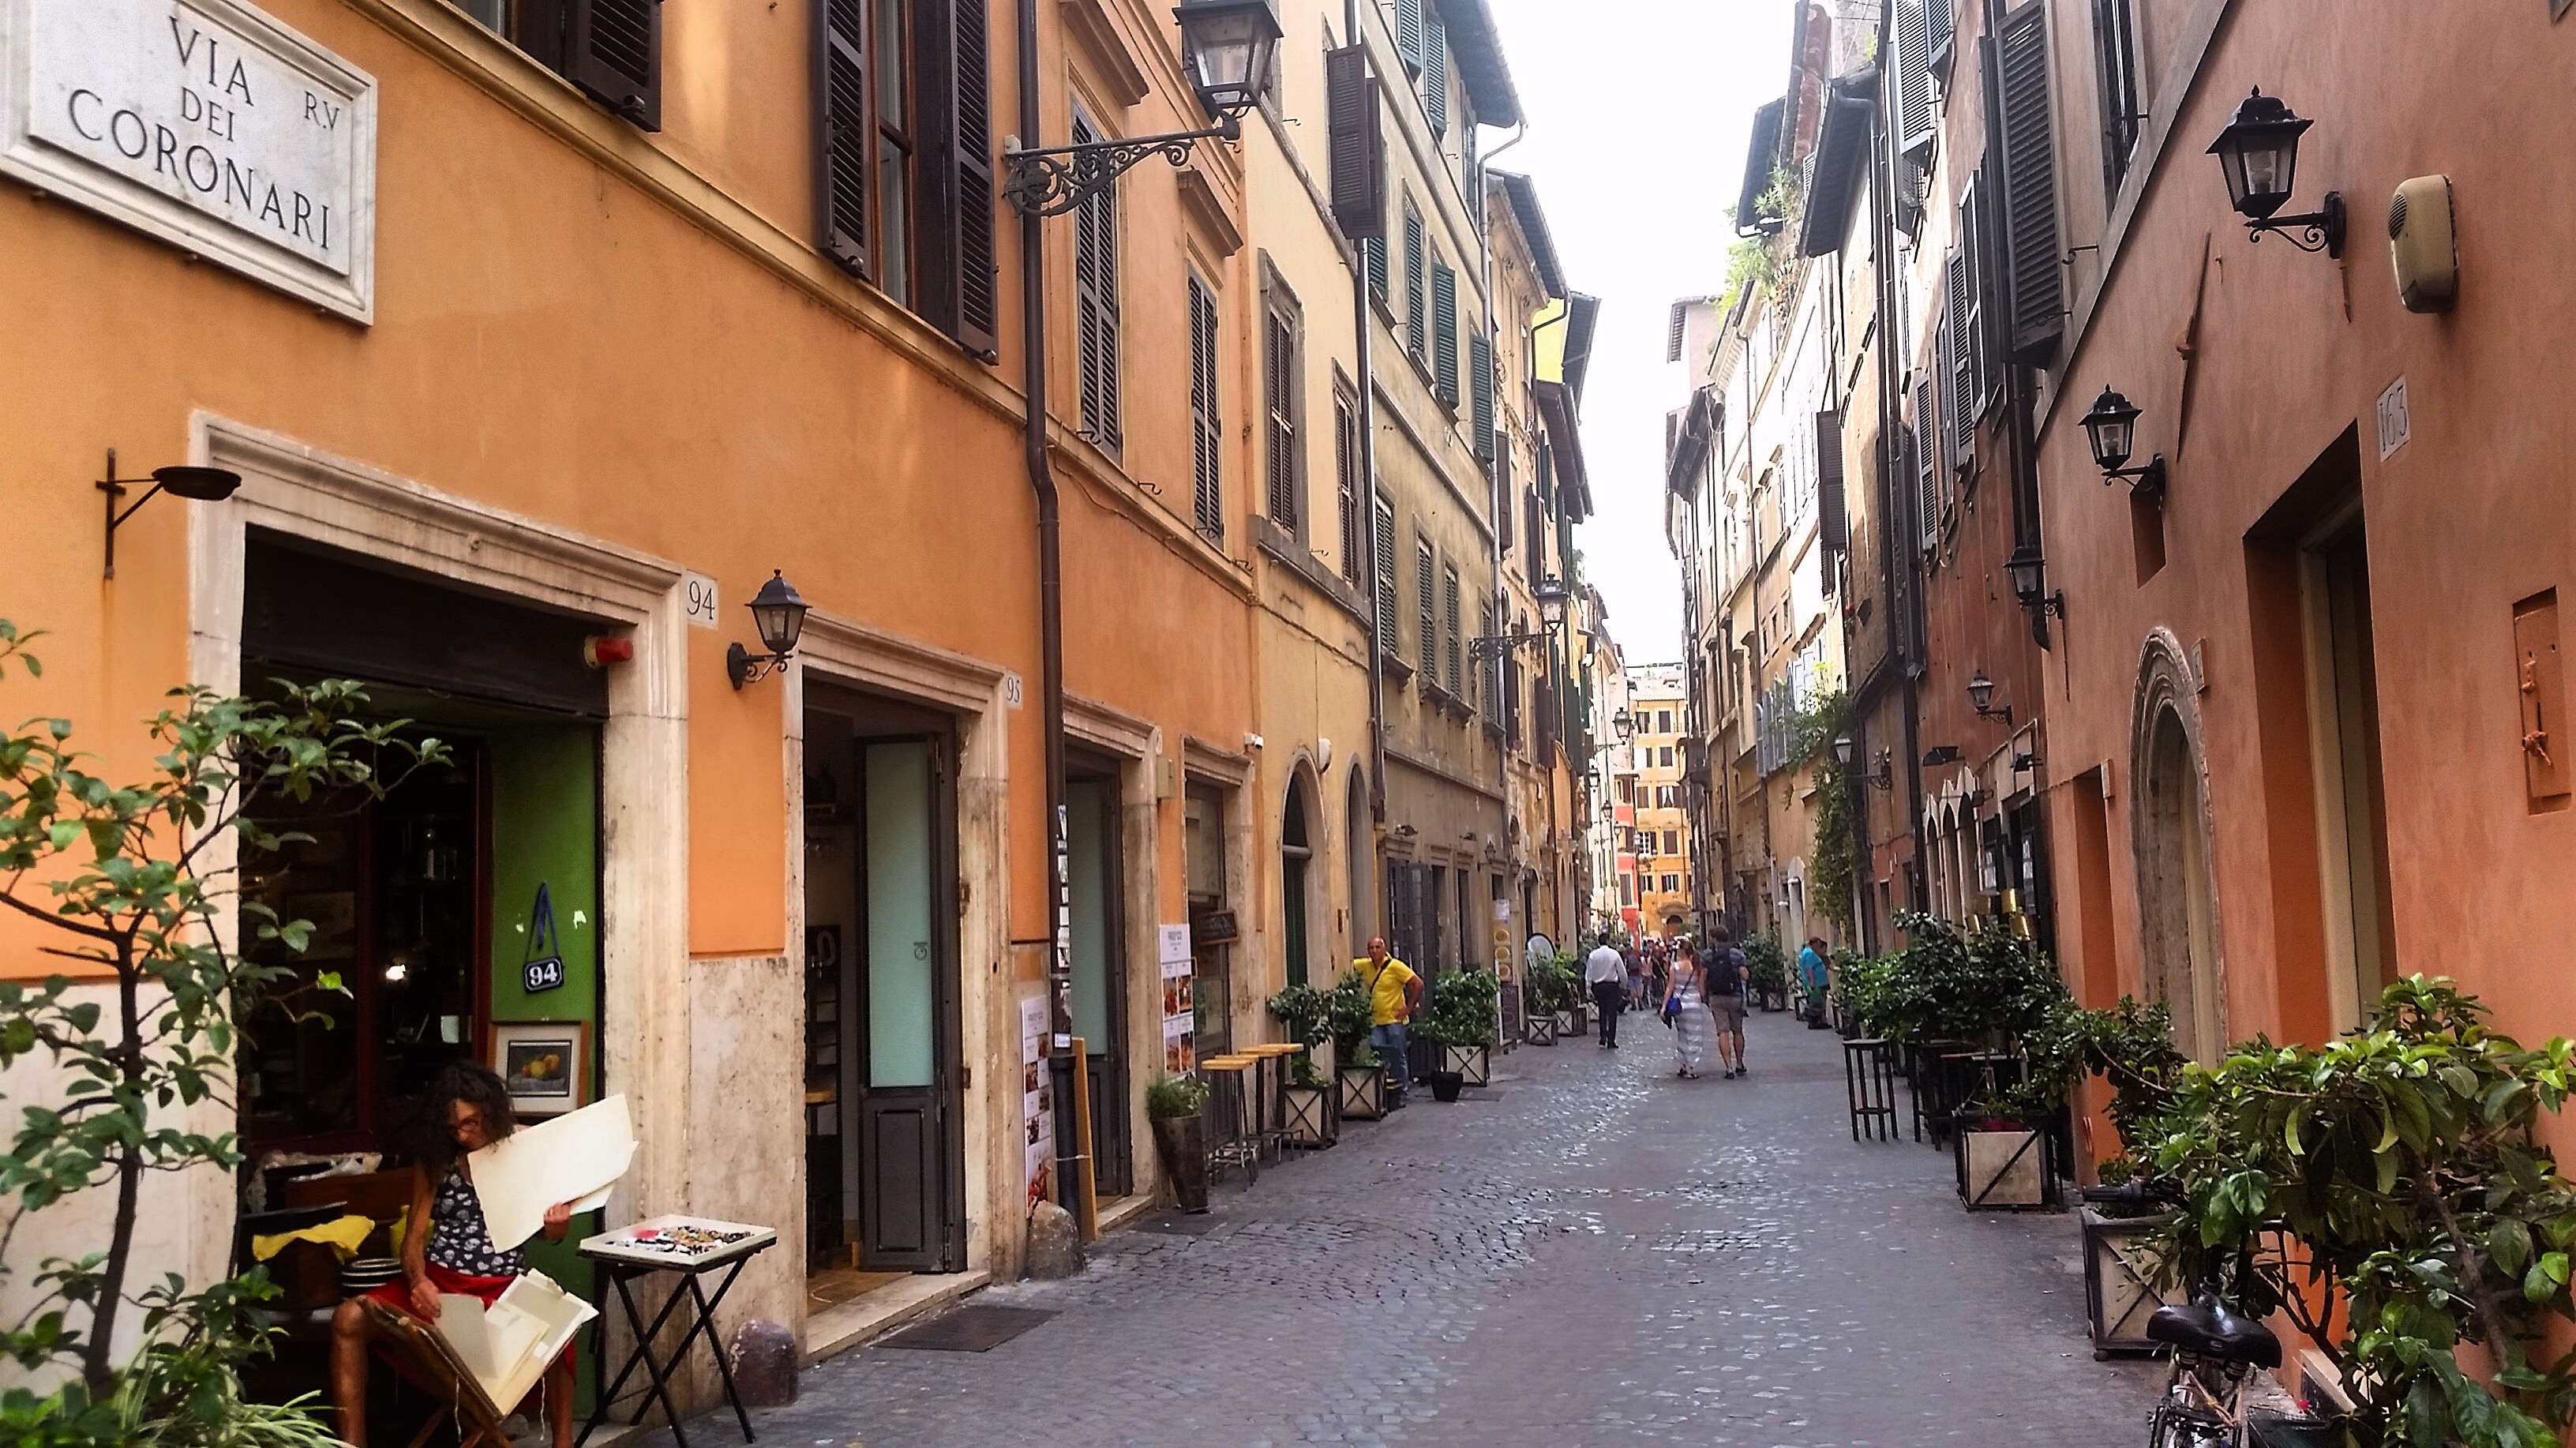 Tranquil-Charming-Via dei Coronari-antique-art shops-Rome.